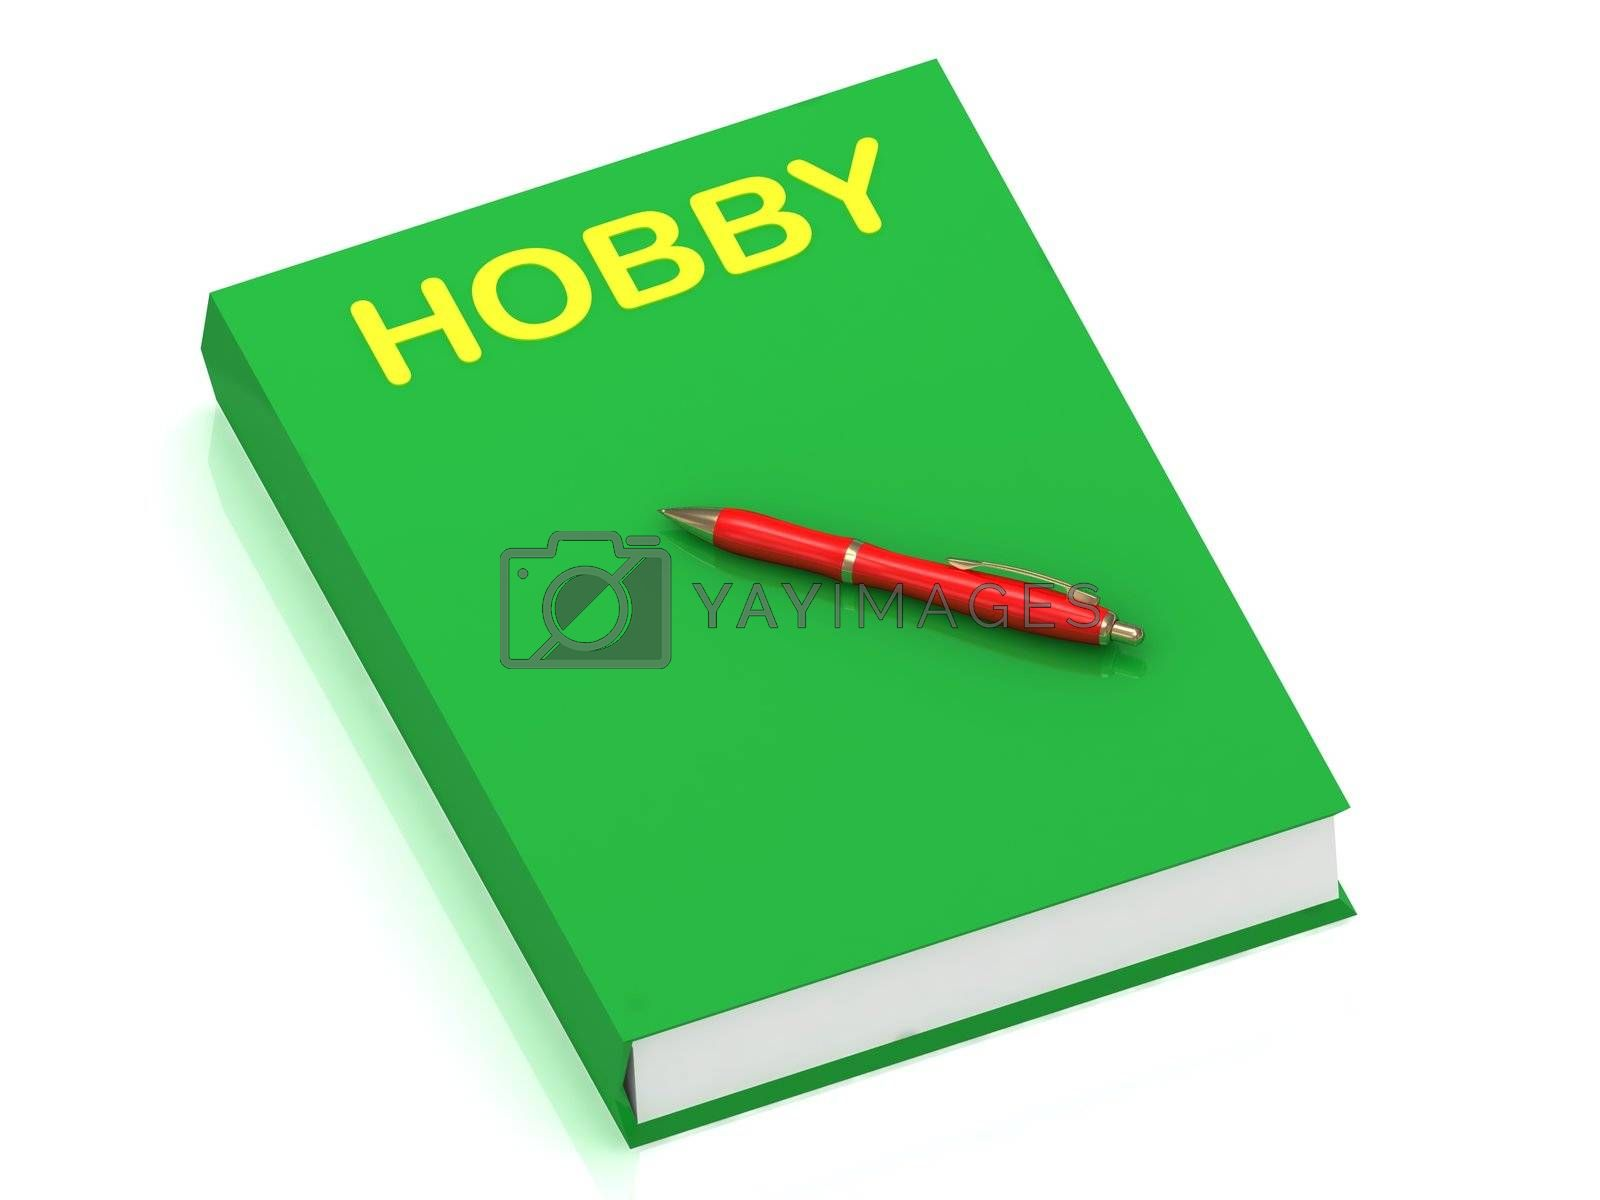 HOBBY inscription on cover book  by GreenM